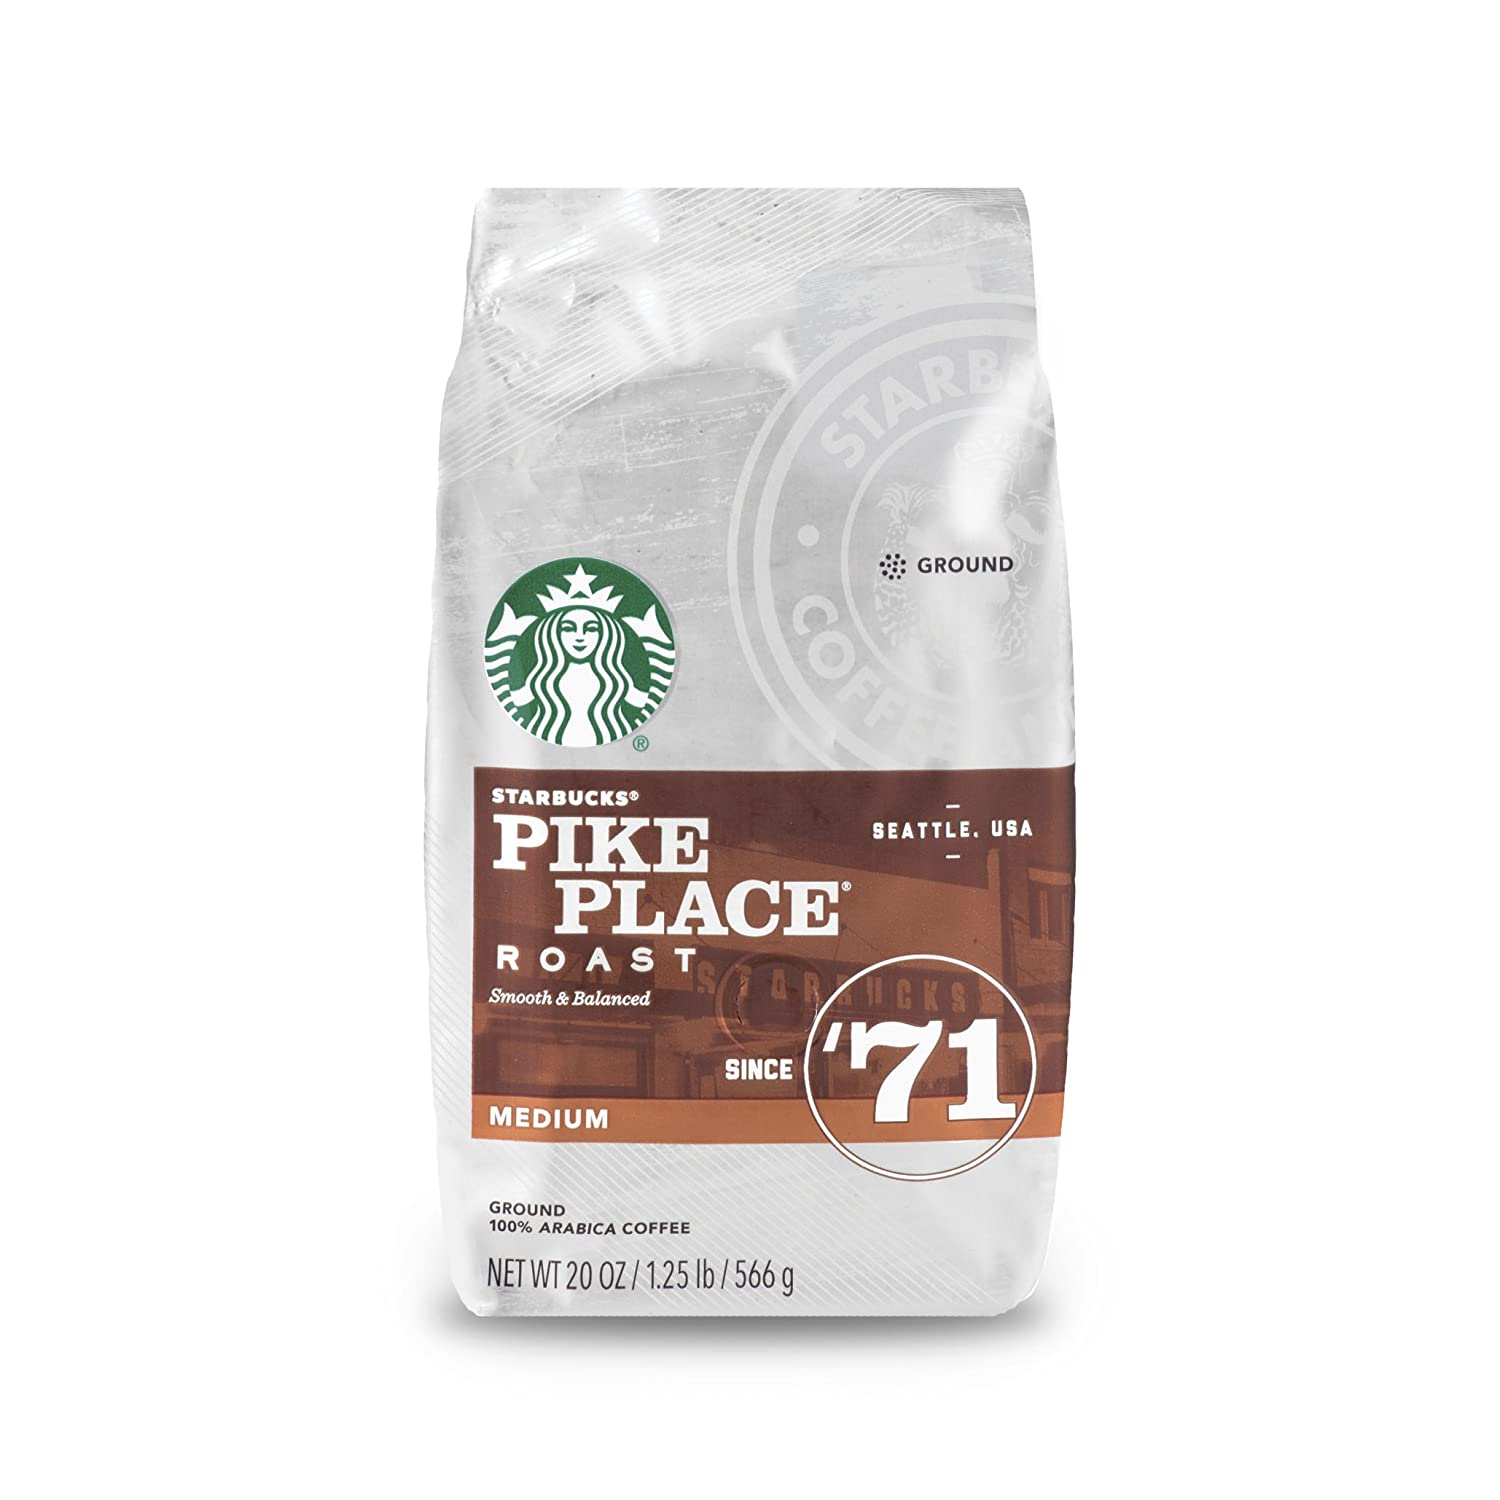 Starbucks Pike Place Roast Medium Roast Coffee, Ground, 20-ounce bag